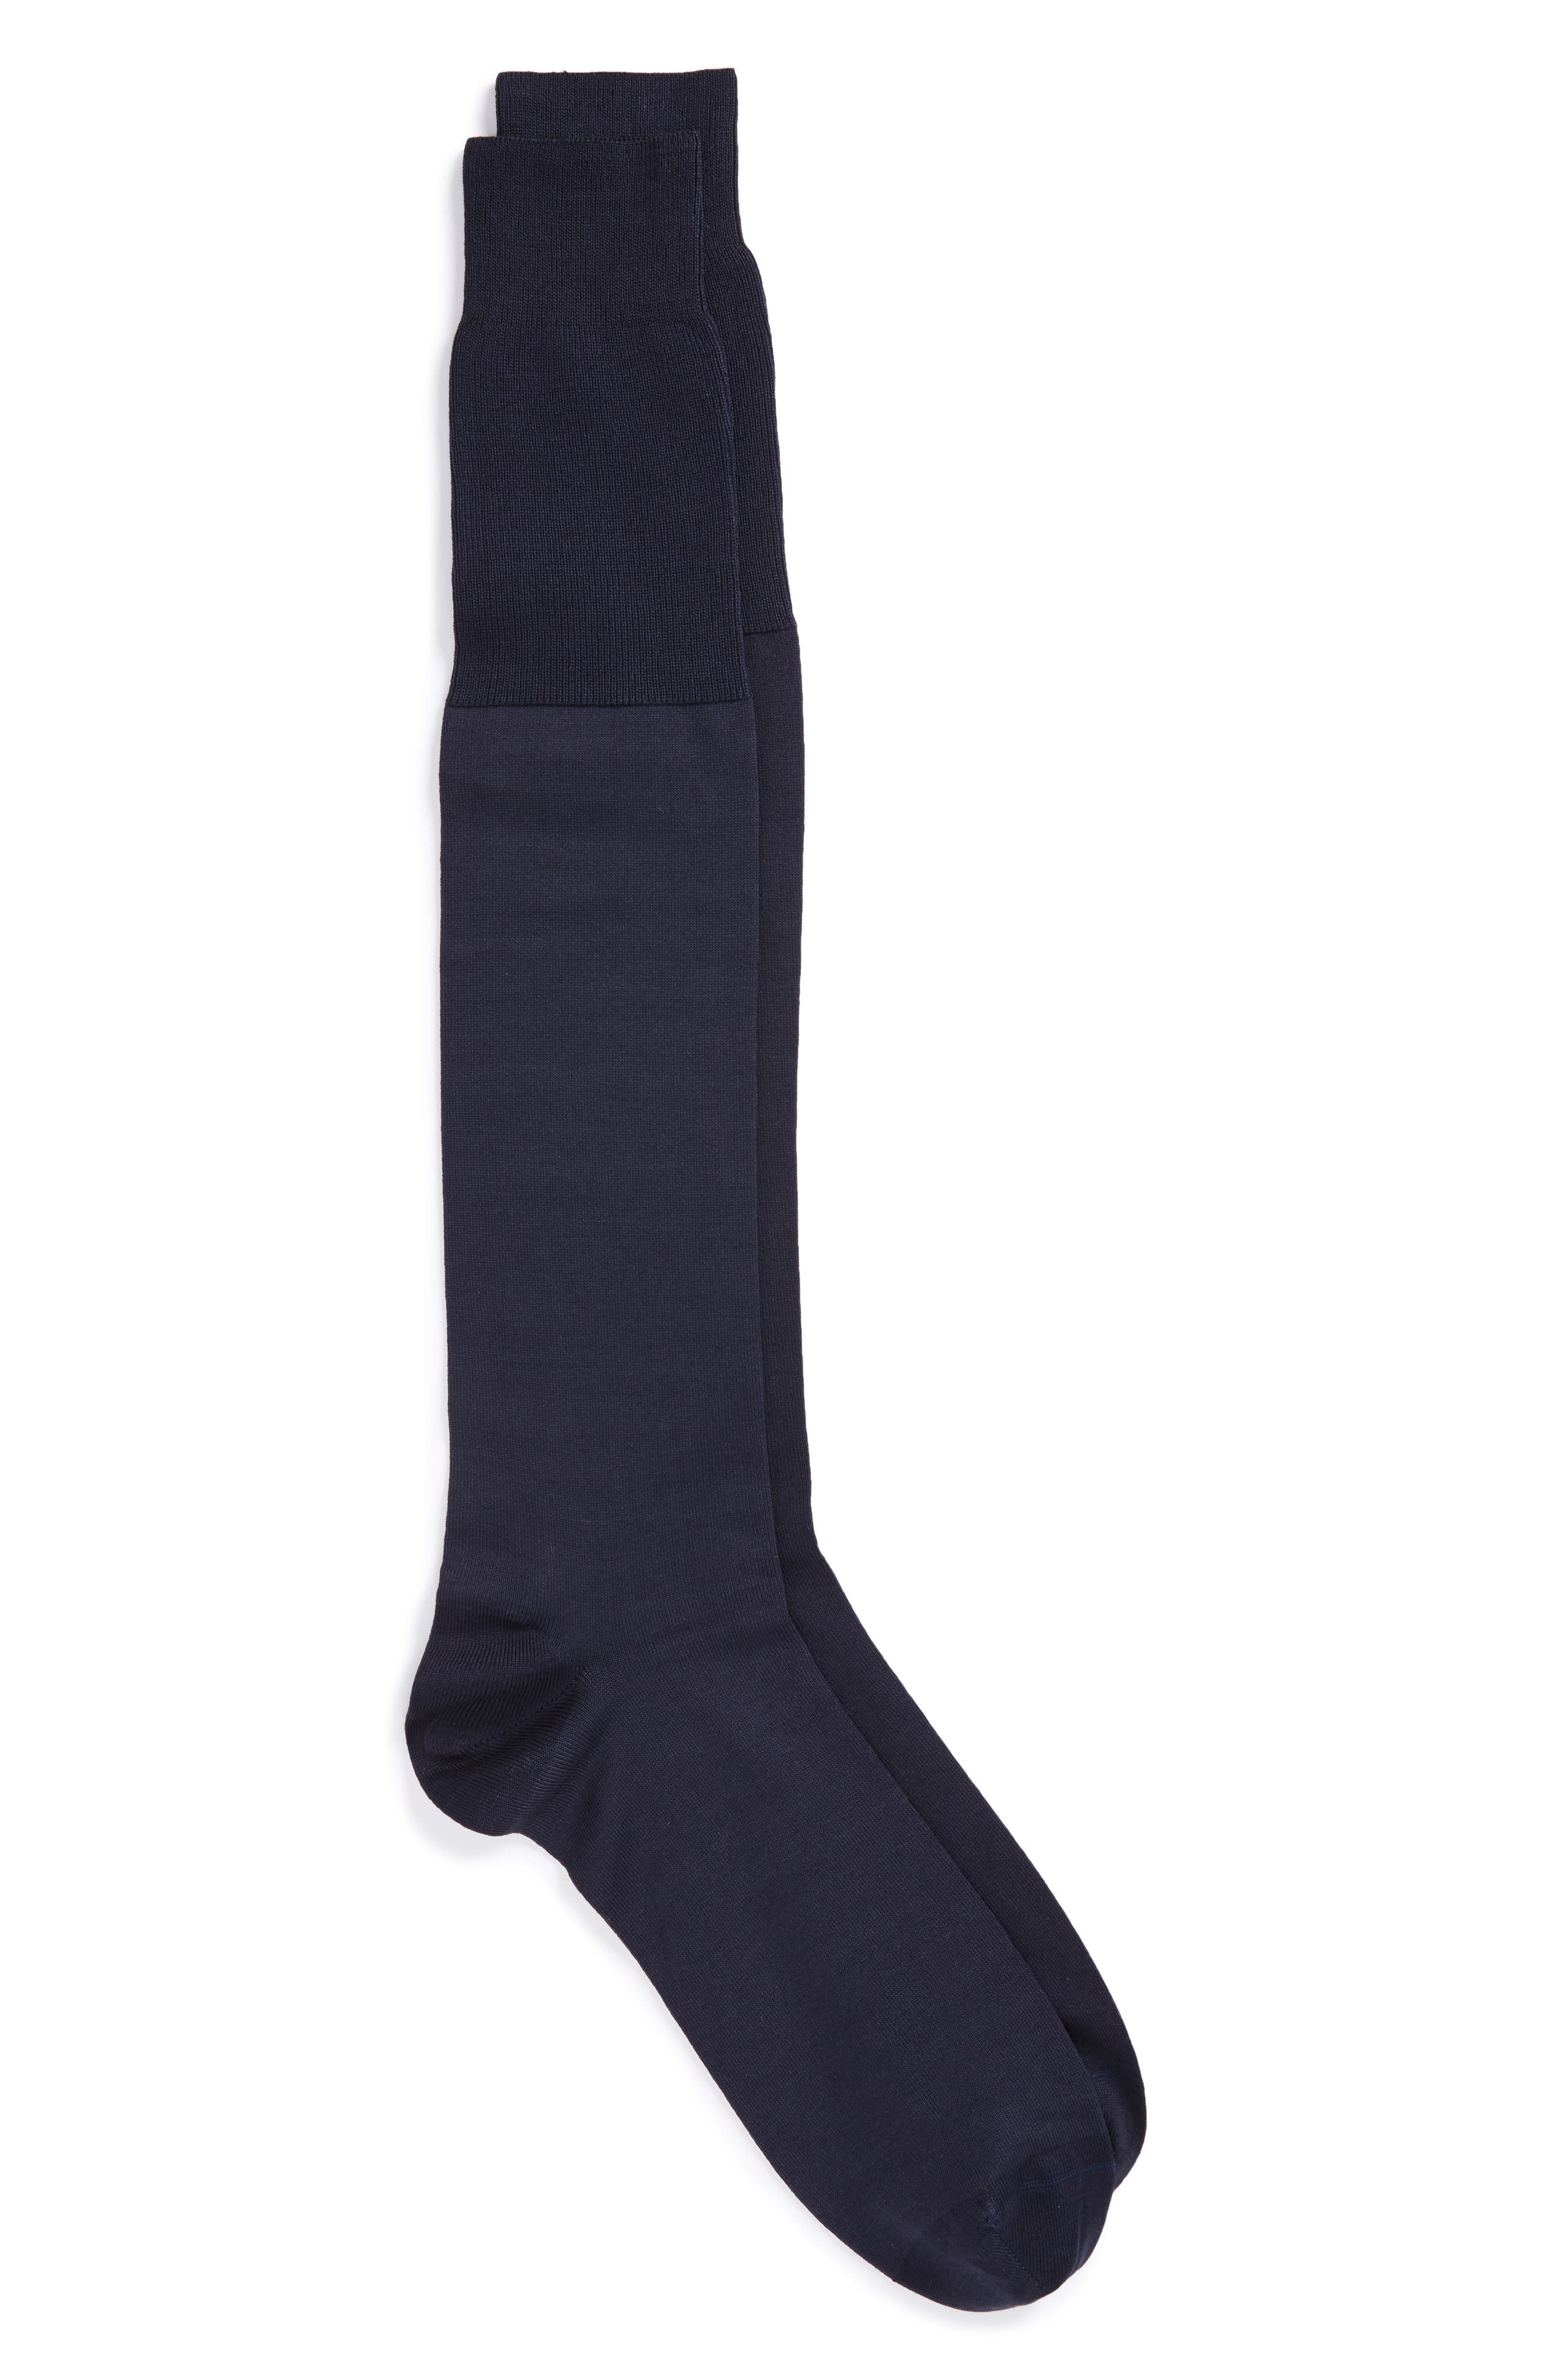 John W. Nordstrom Solid Over the Calf Socks